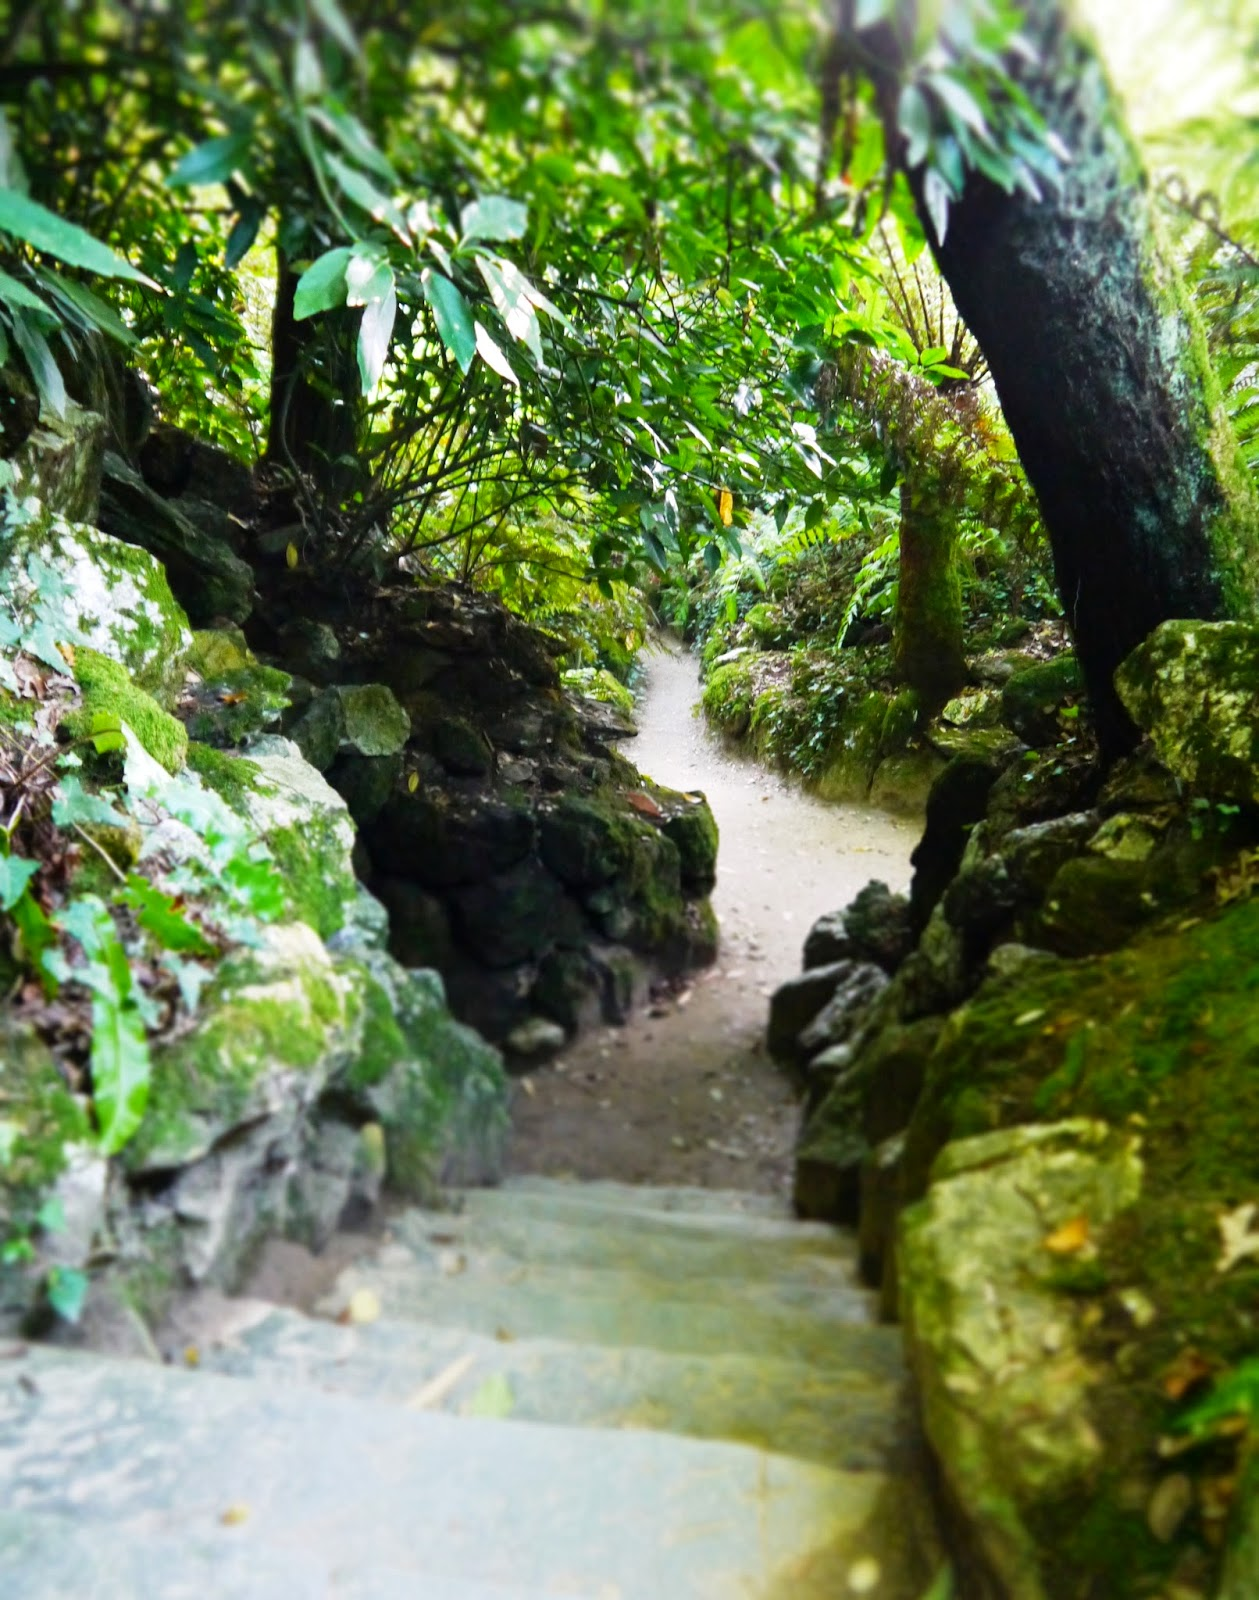 The Lost Gardens of Heligan, Cornwall - sunken footpaths